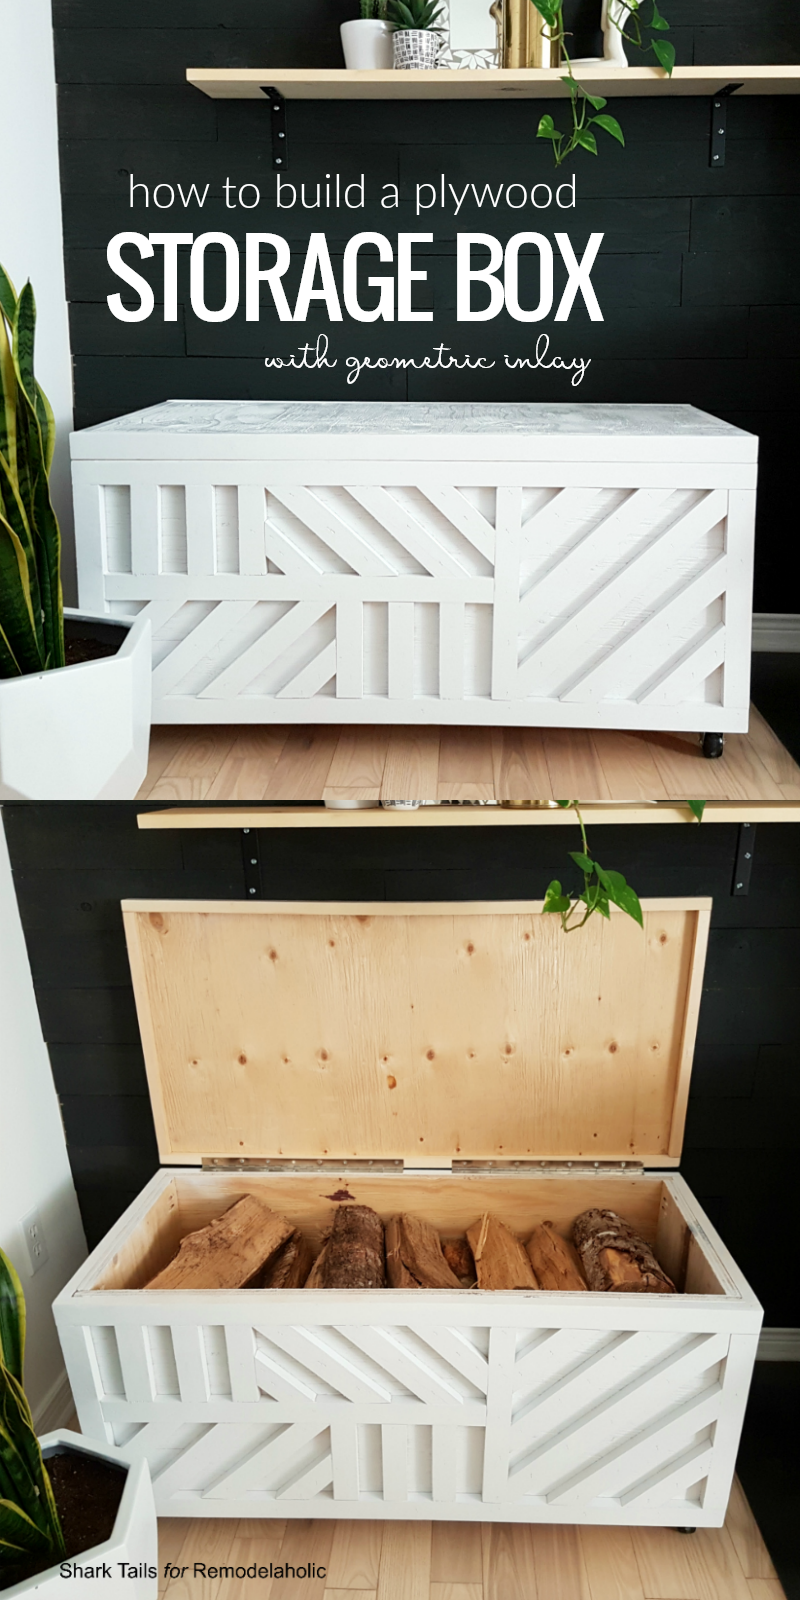 This Plywood Storage Box Is Easy To Build From Just ONE Sheet Of 3/4